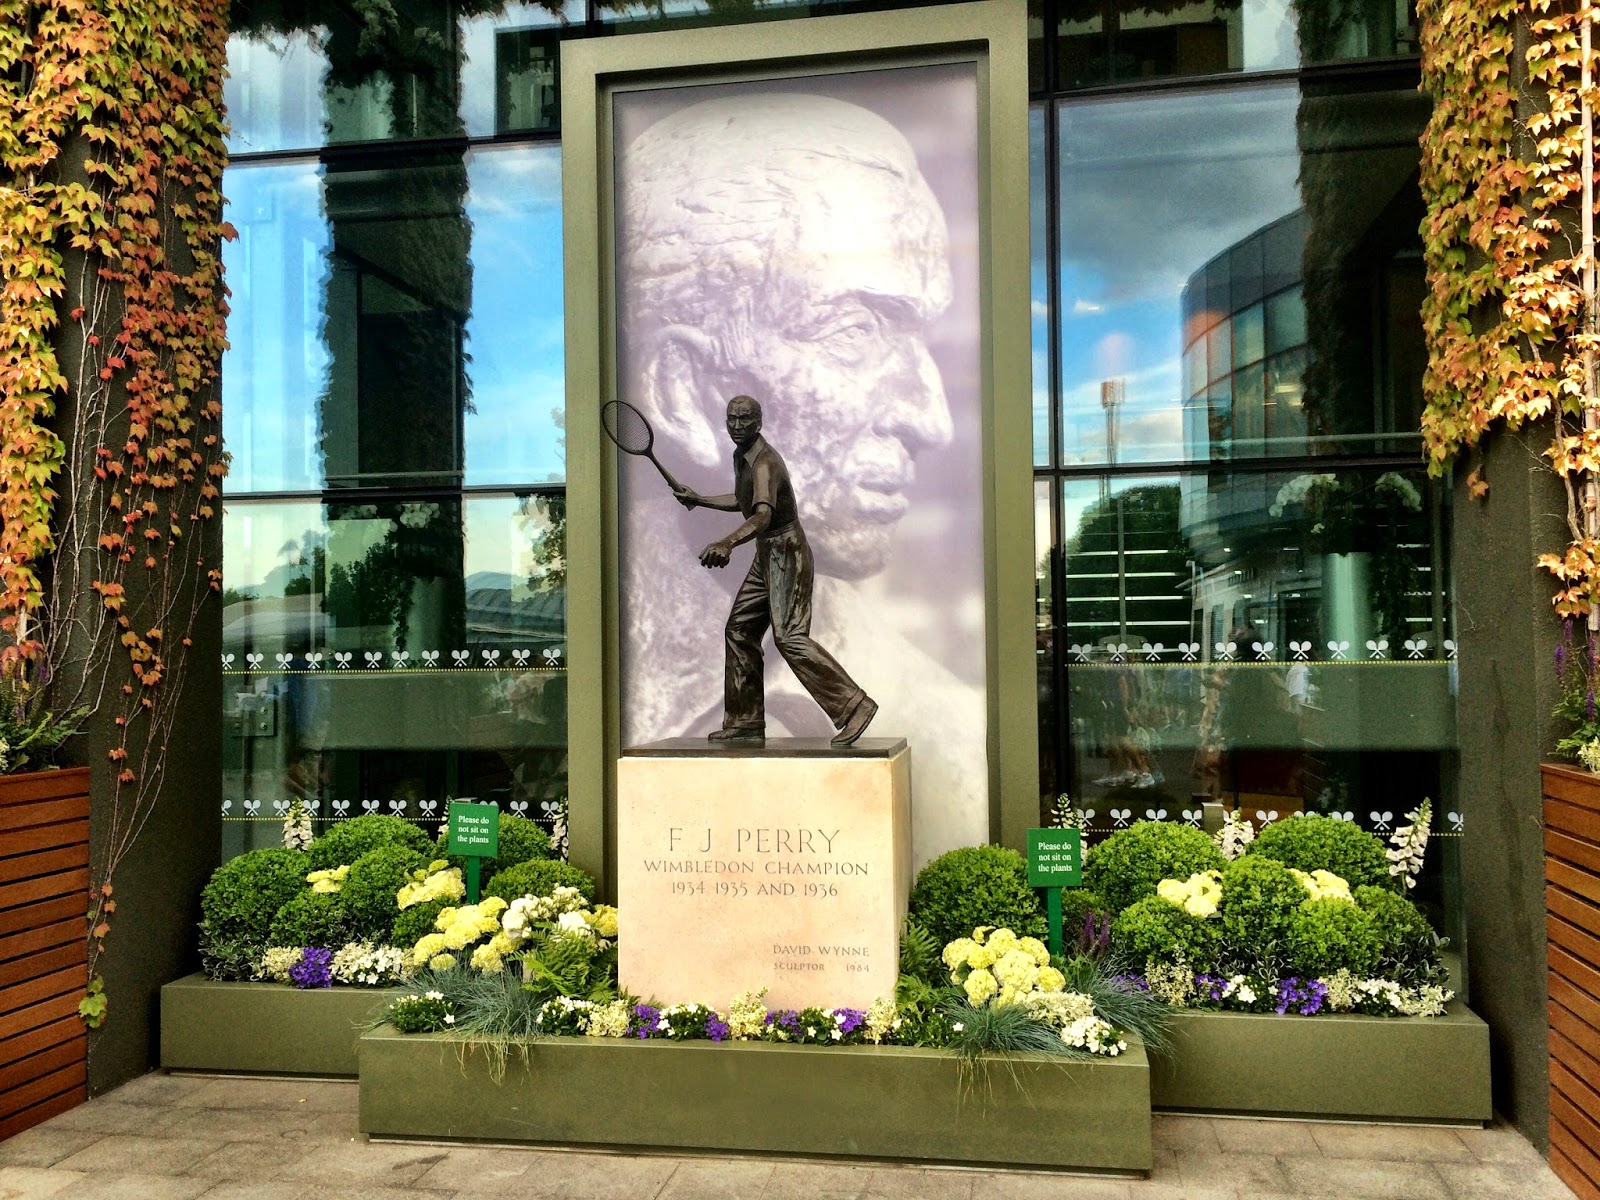 Fred Perry statue - Wimbledon 2014